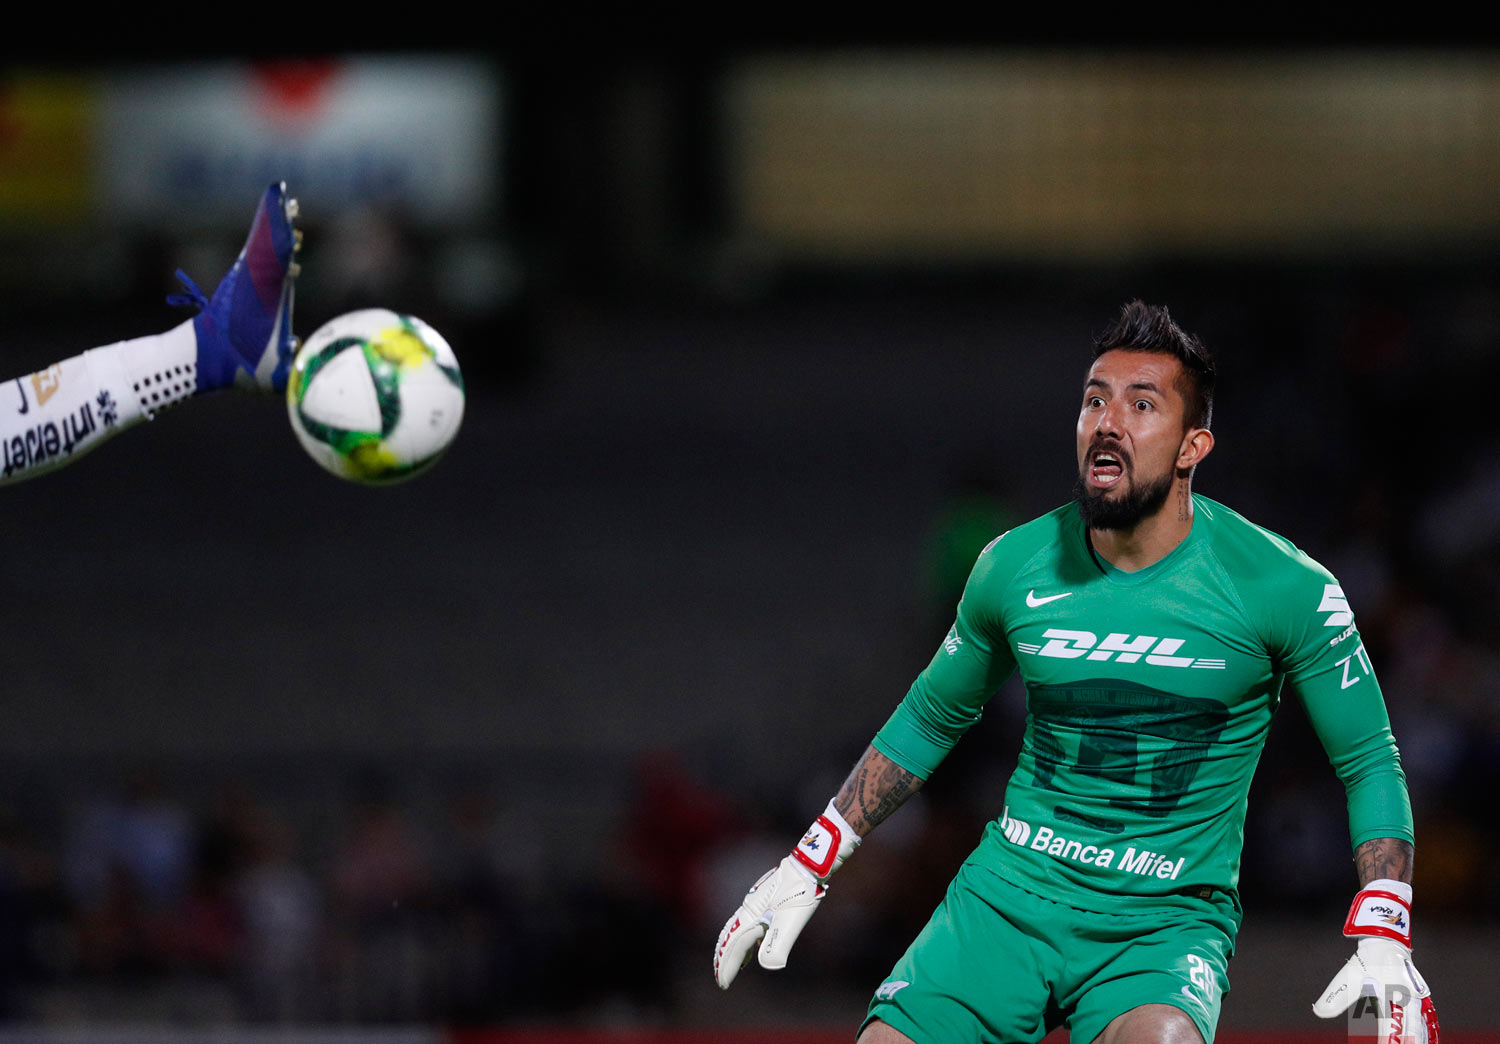 In this March 12, 2019 photo, Pumas' goalkeeper Miguel Fraga watches as a scoring attempt by Dorados is intercepted by teammate Alan Mendoza, in their Copa MX quarterfinal match at Olympic University Stadium in Mexico City. (AP Photo/Rebecca Blackwell)